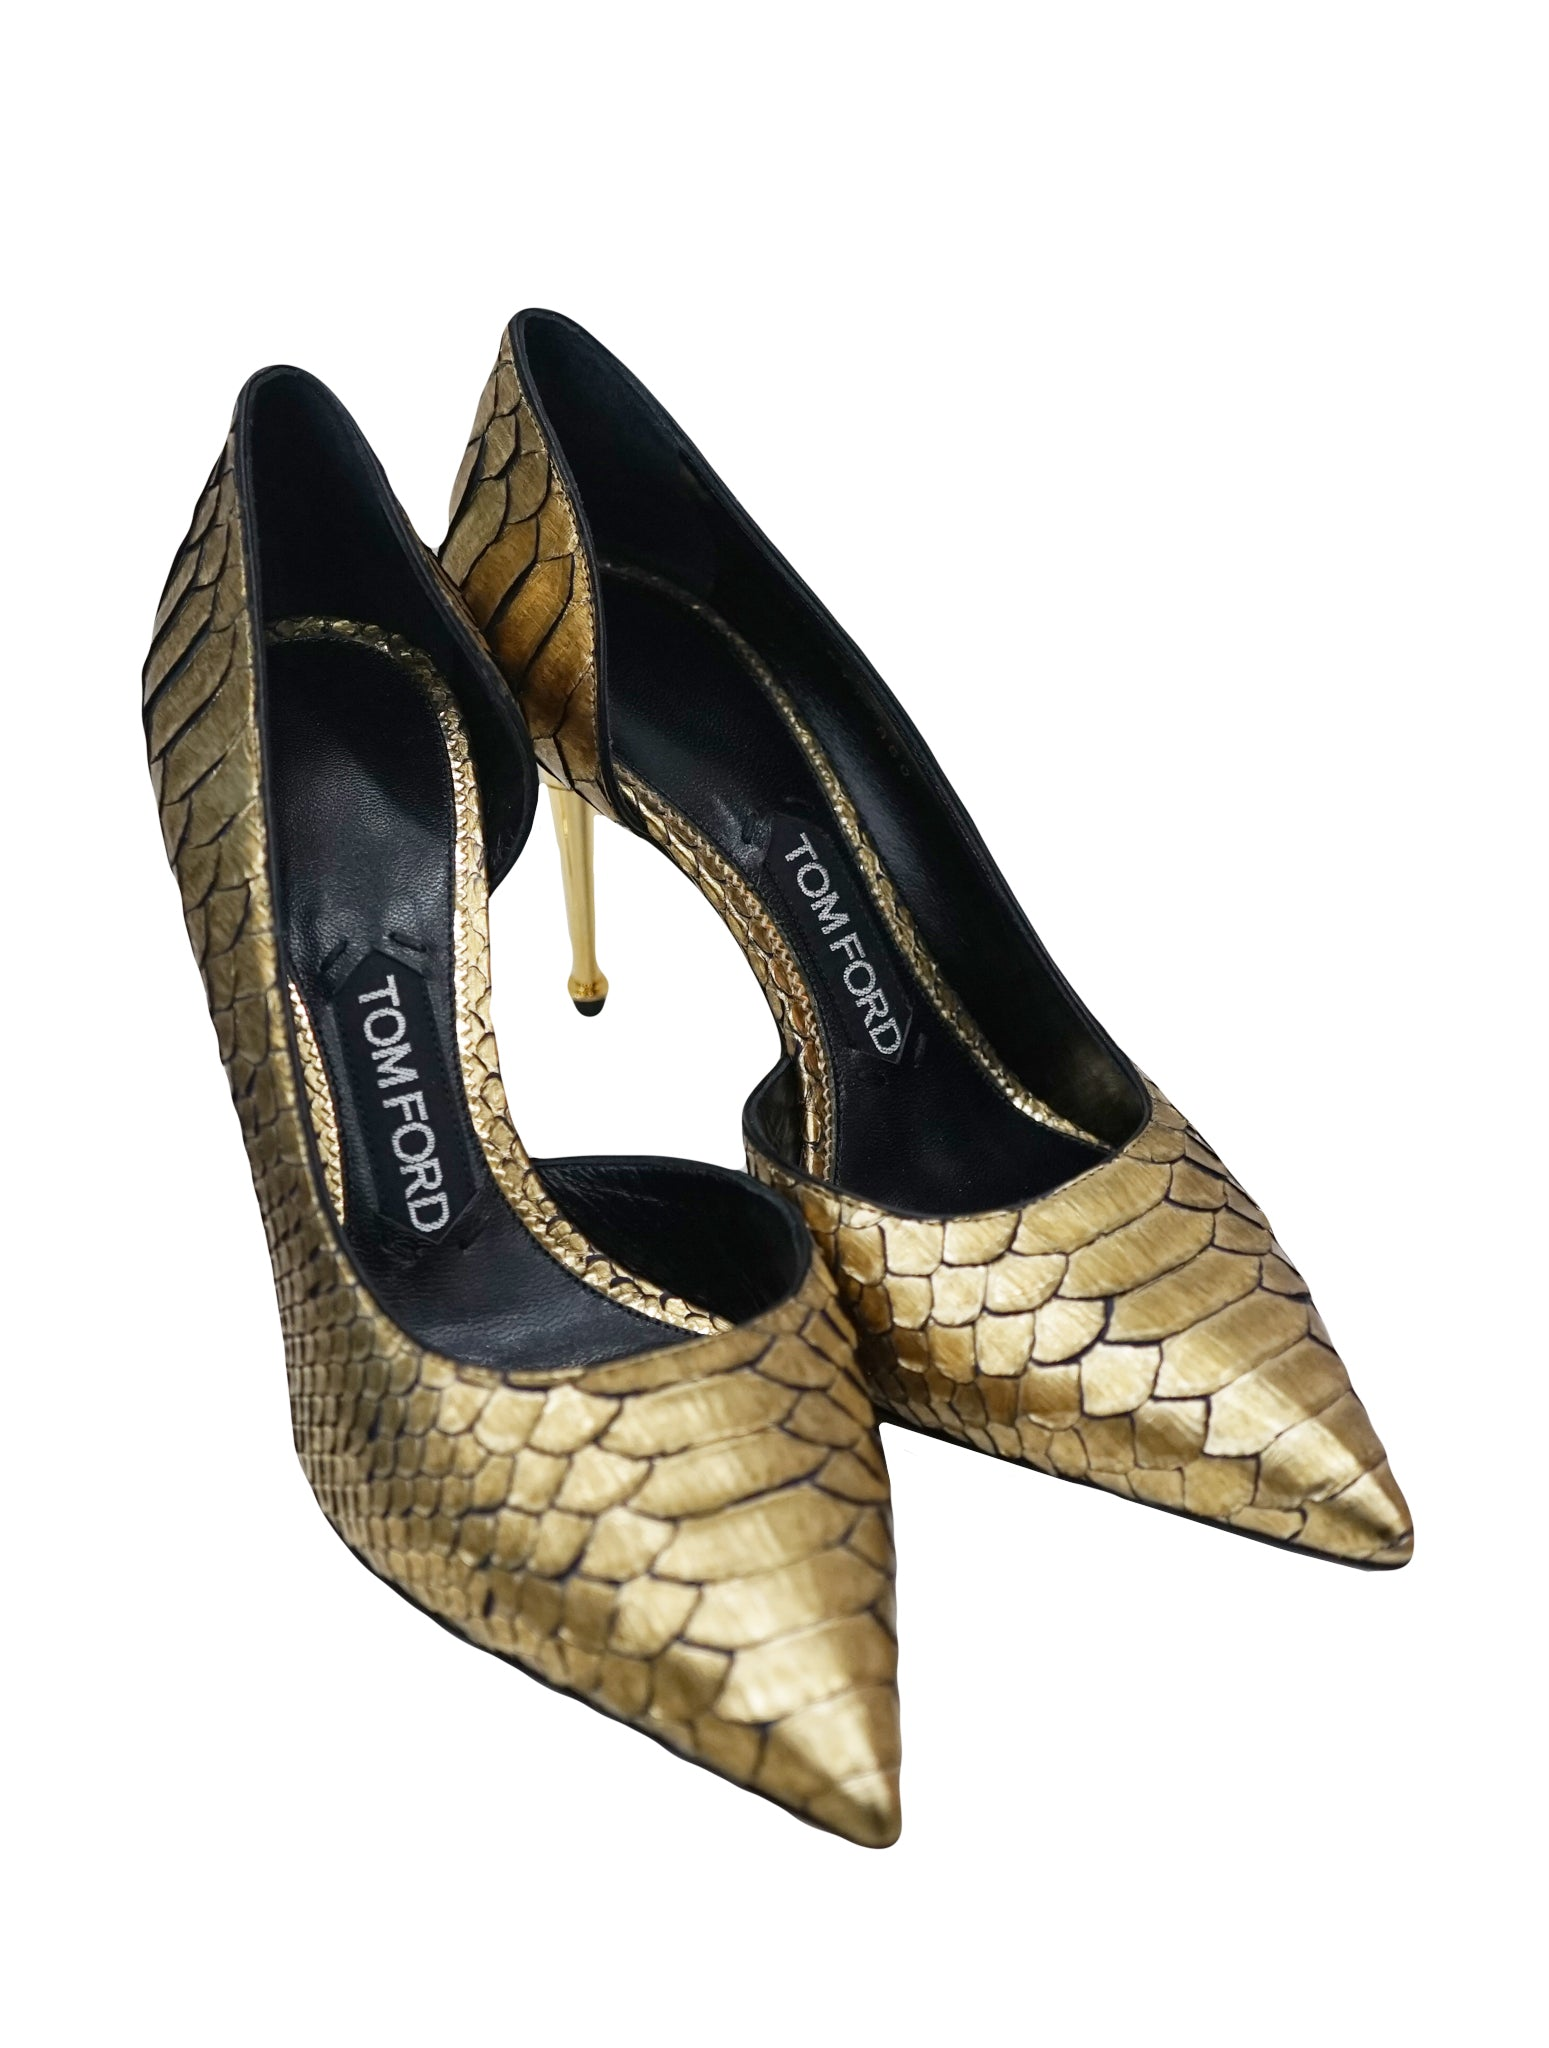 METALLIC GOLD PYTHON POINTED TOE PUMPS